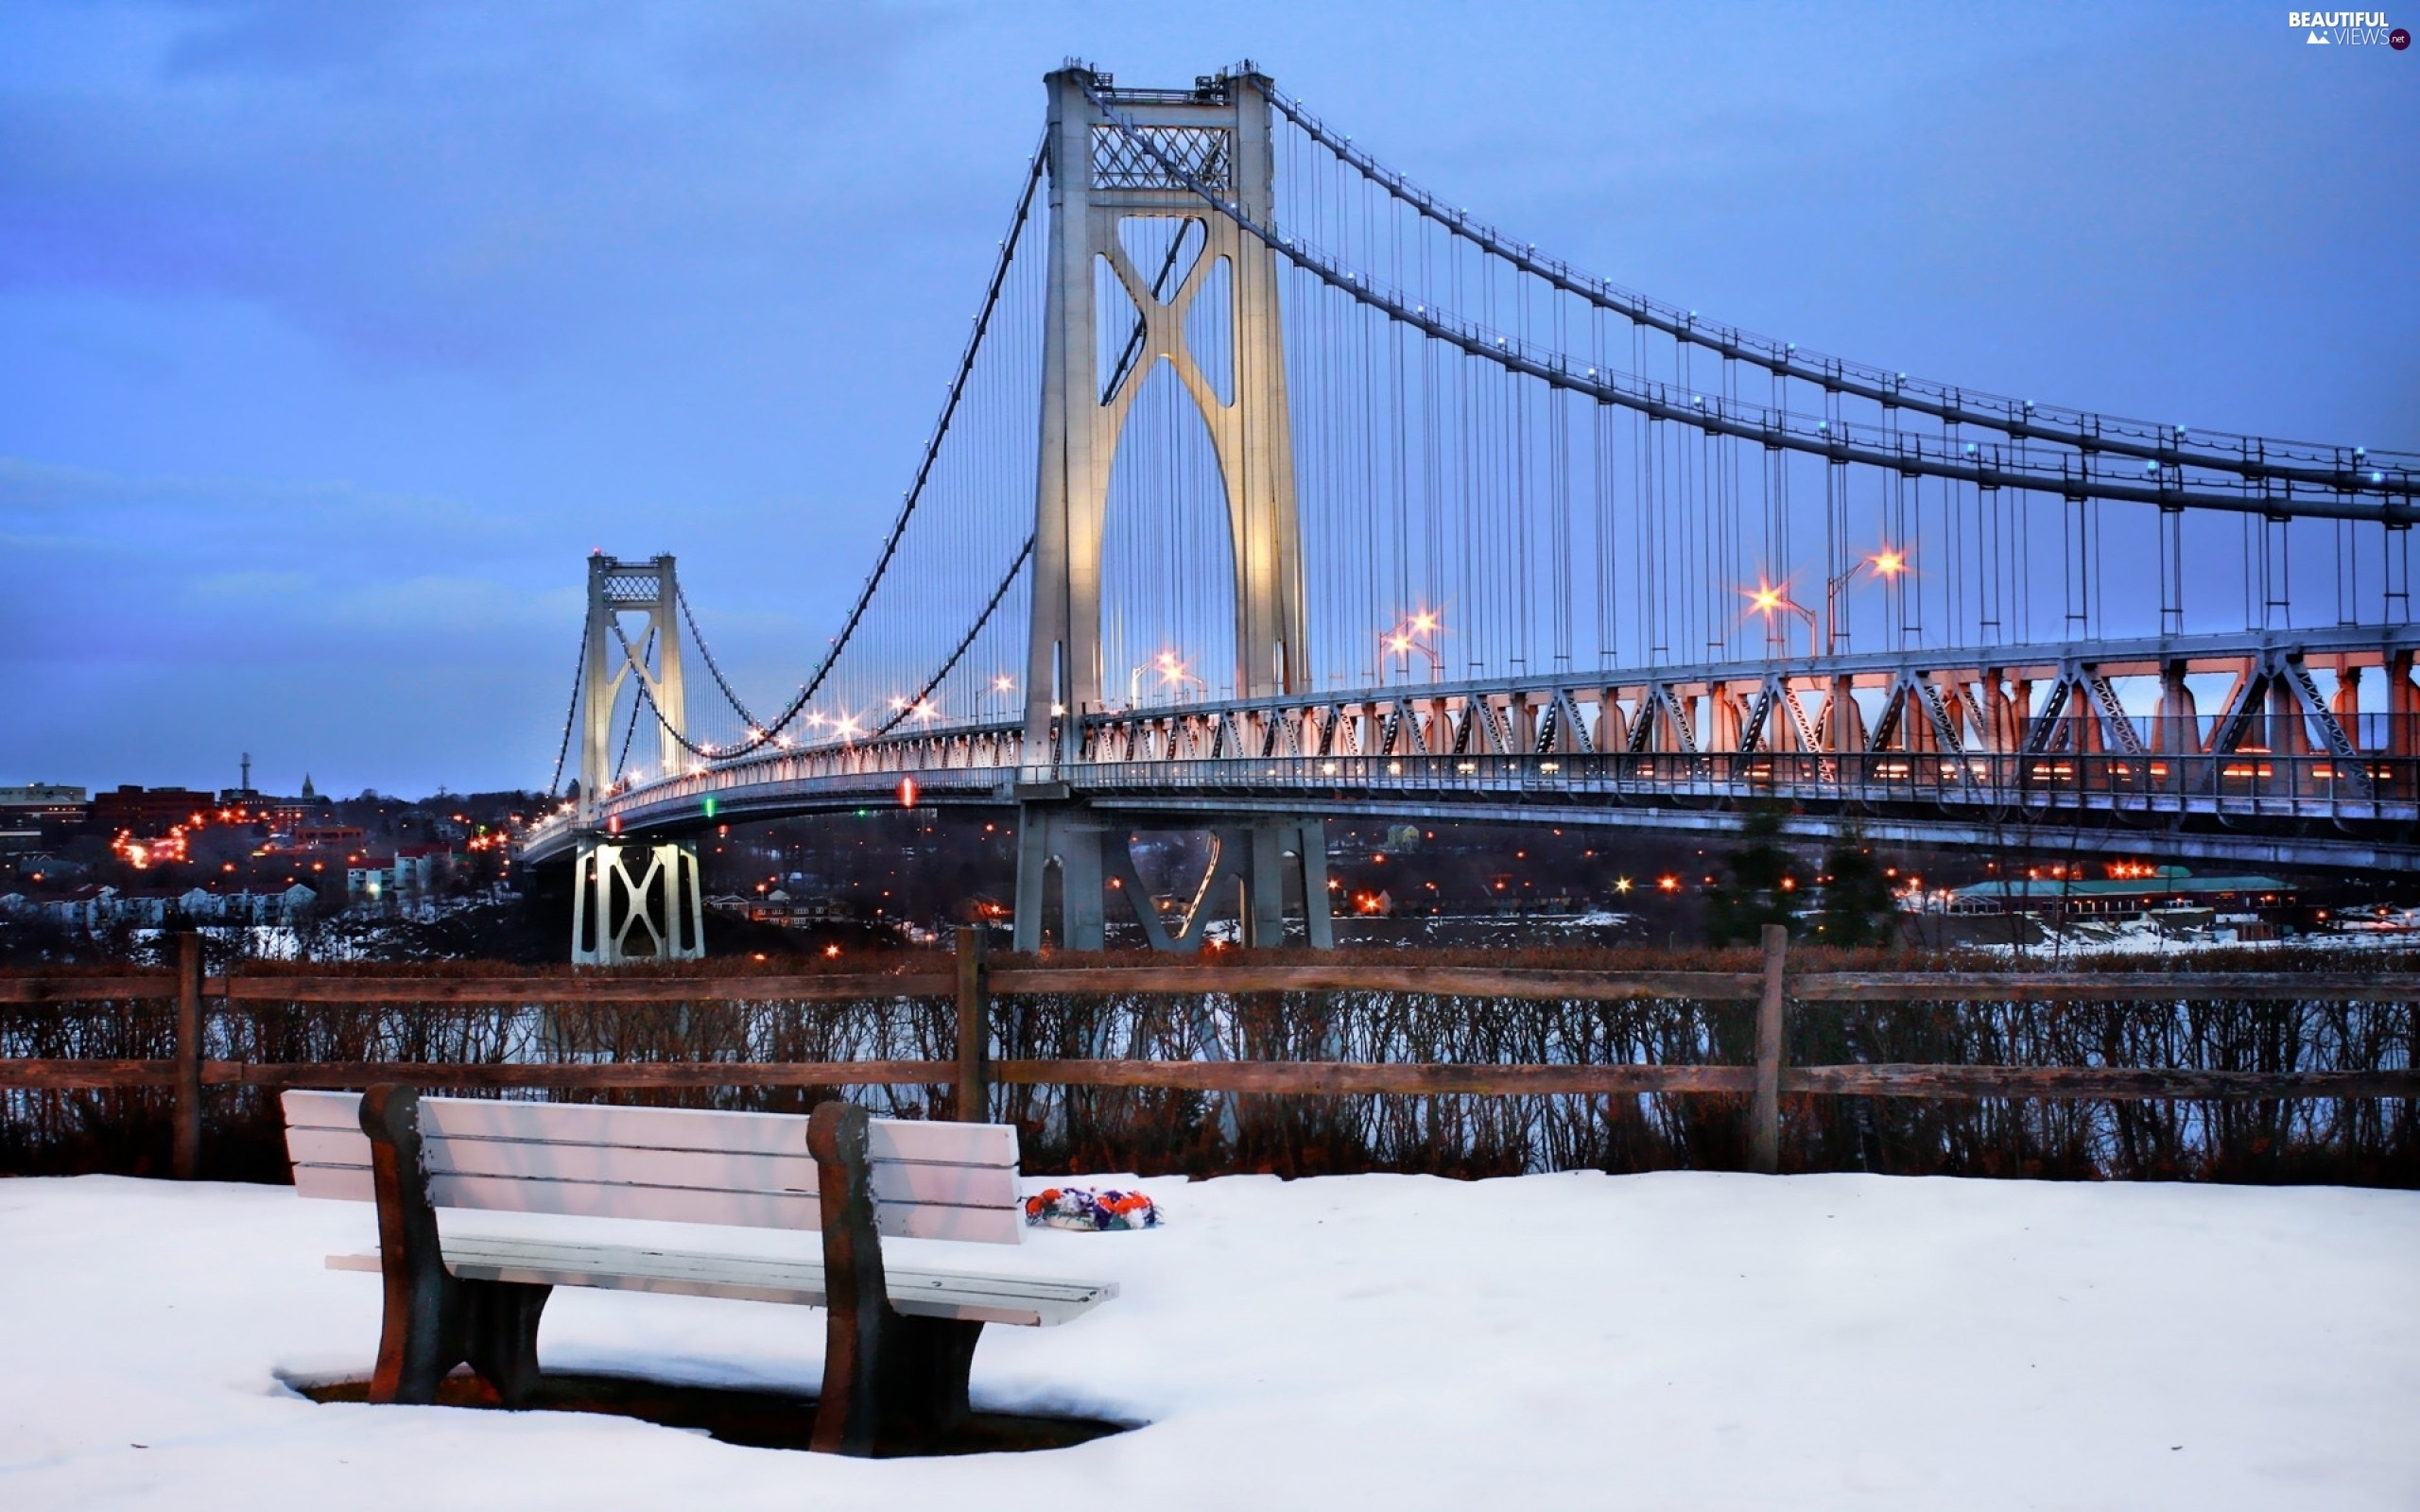 Bench, winter, bridge, River, Floodlit